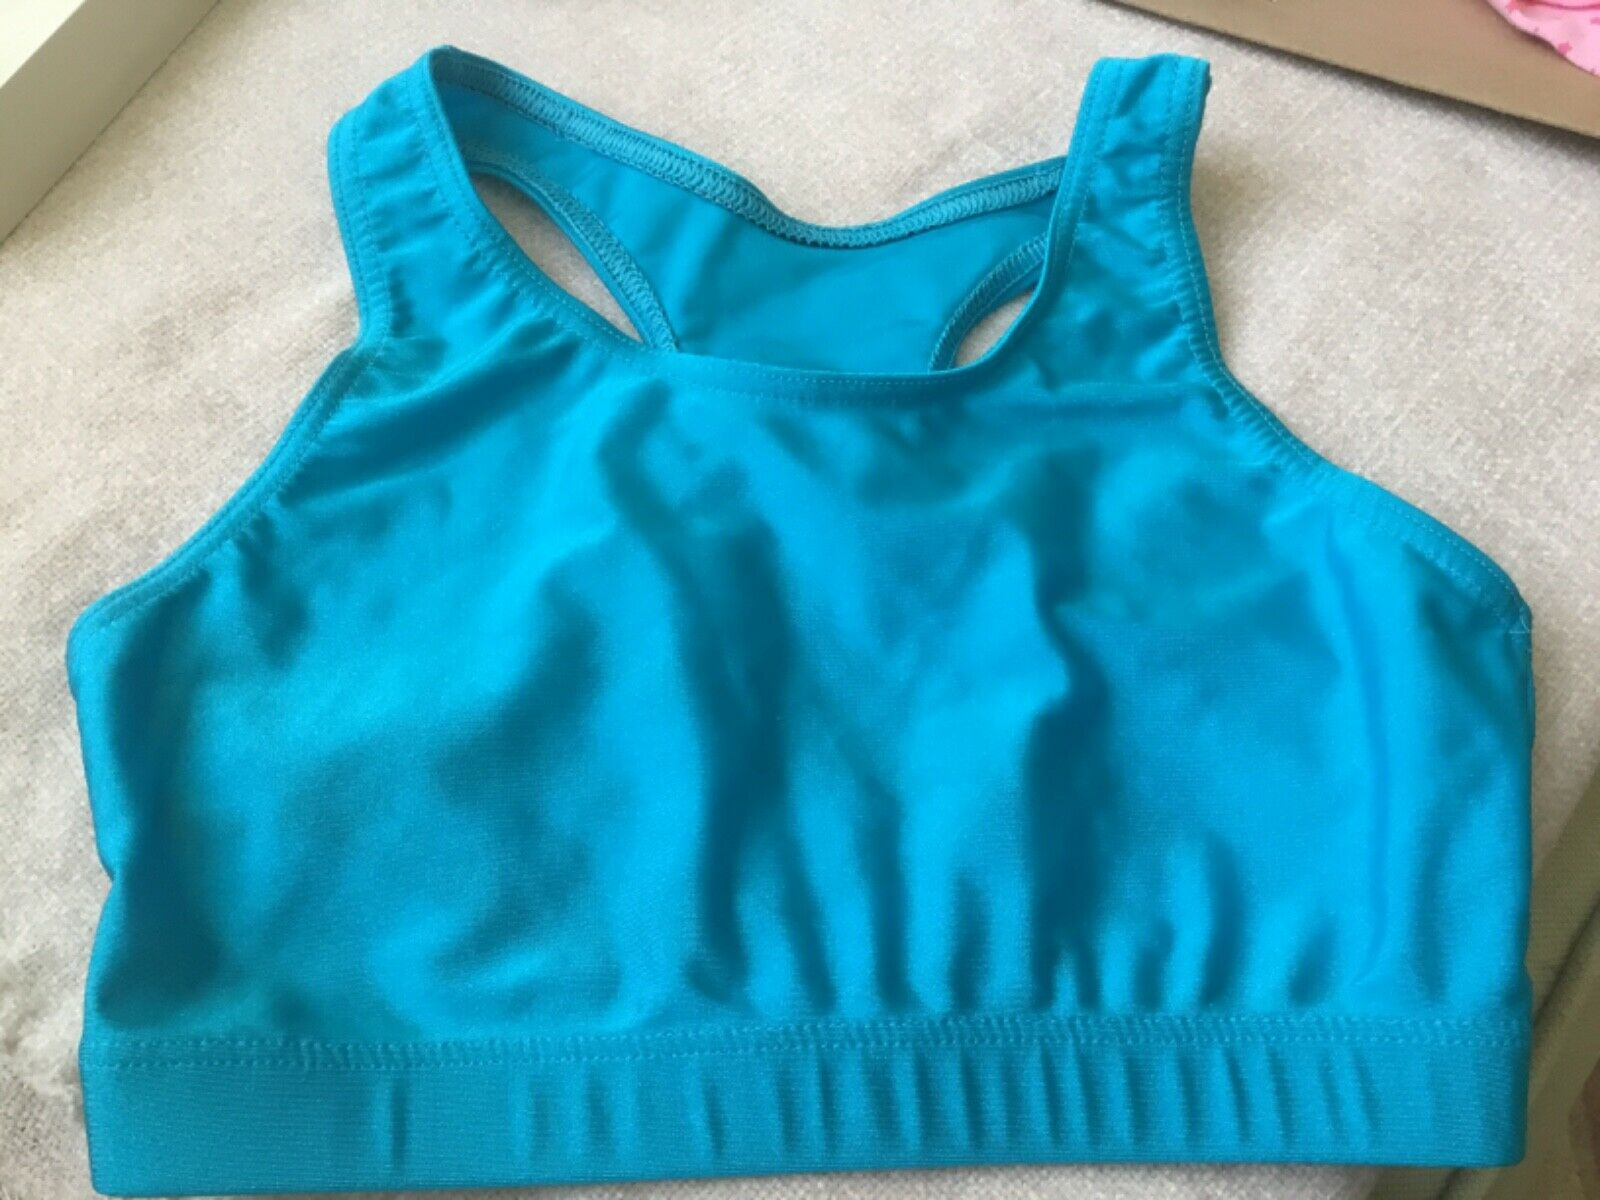 ROCH VALLEY dance cropped top in LIGHT BLUE, size 3A ; 141-150cm